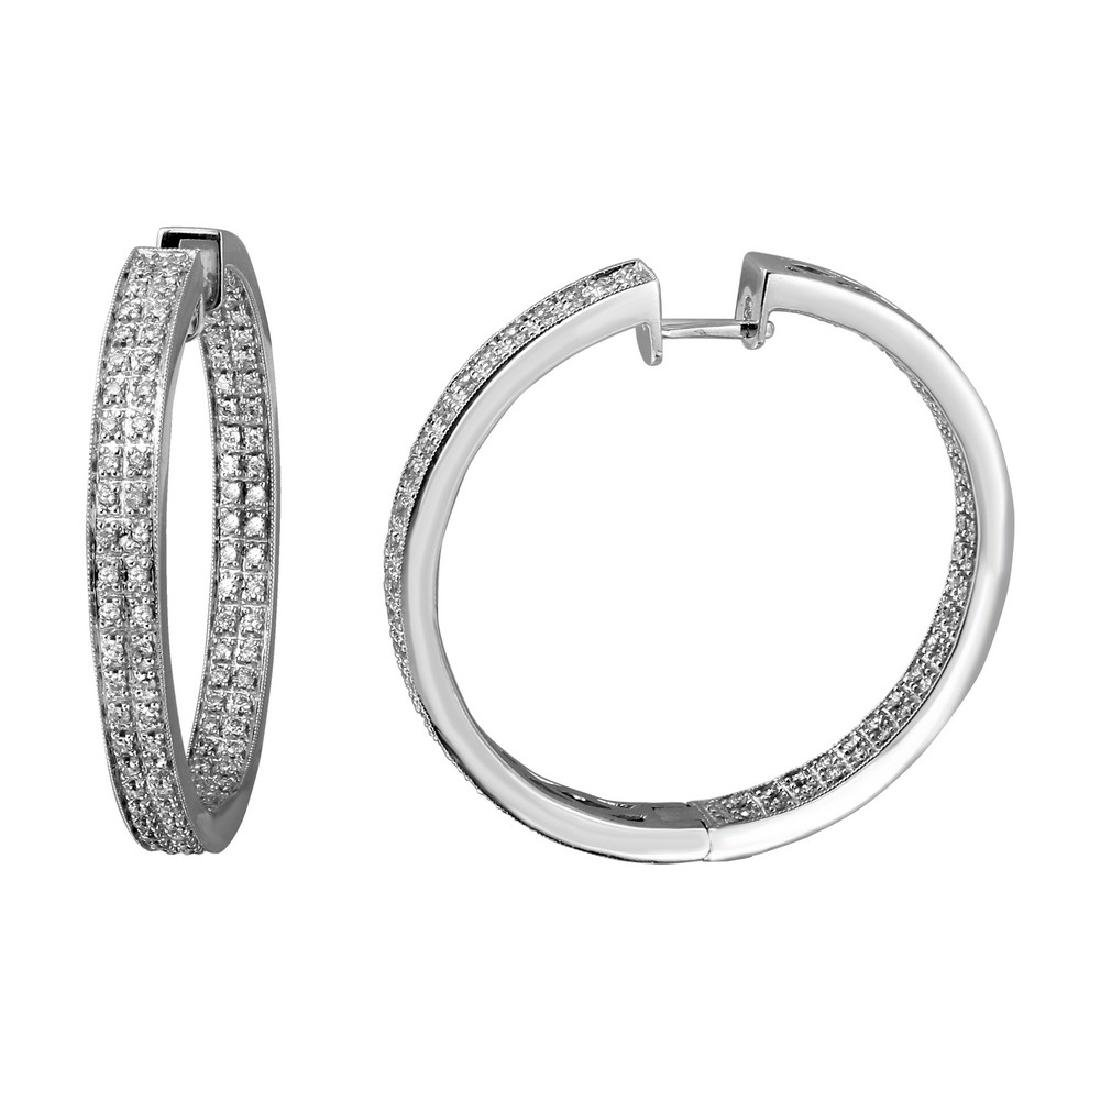 Genuine 1.4 TCW 14K White Gold Ladies Earring